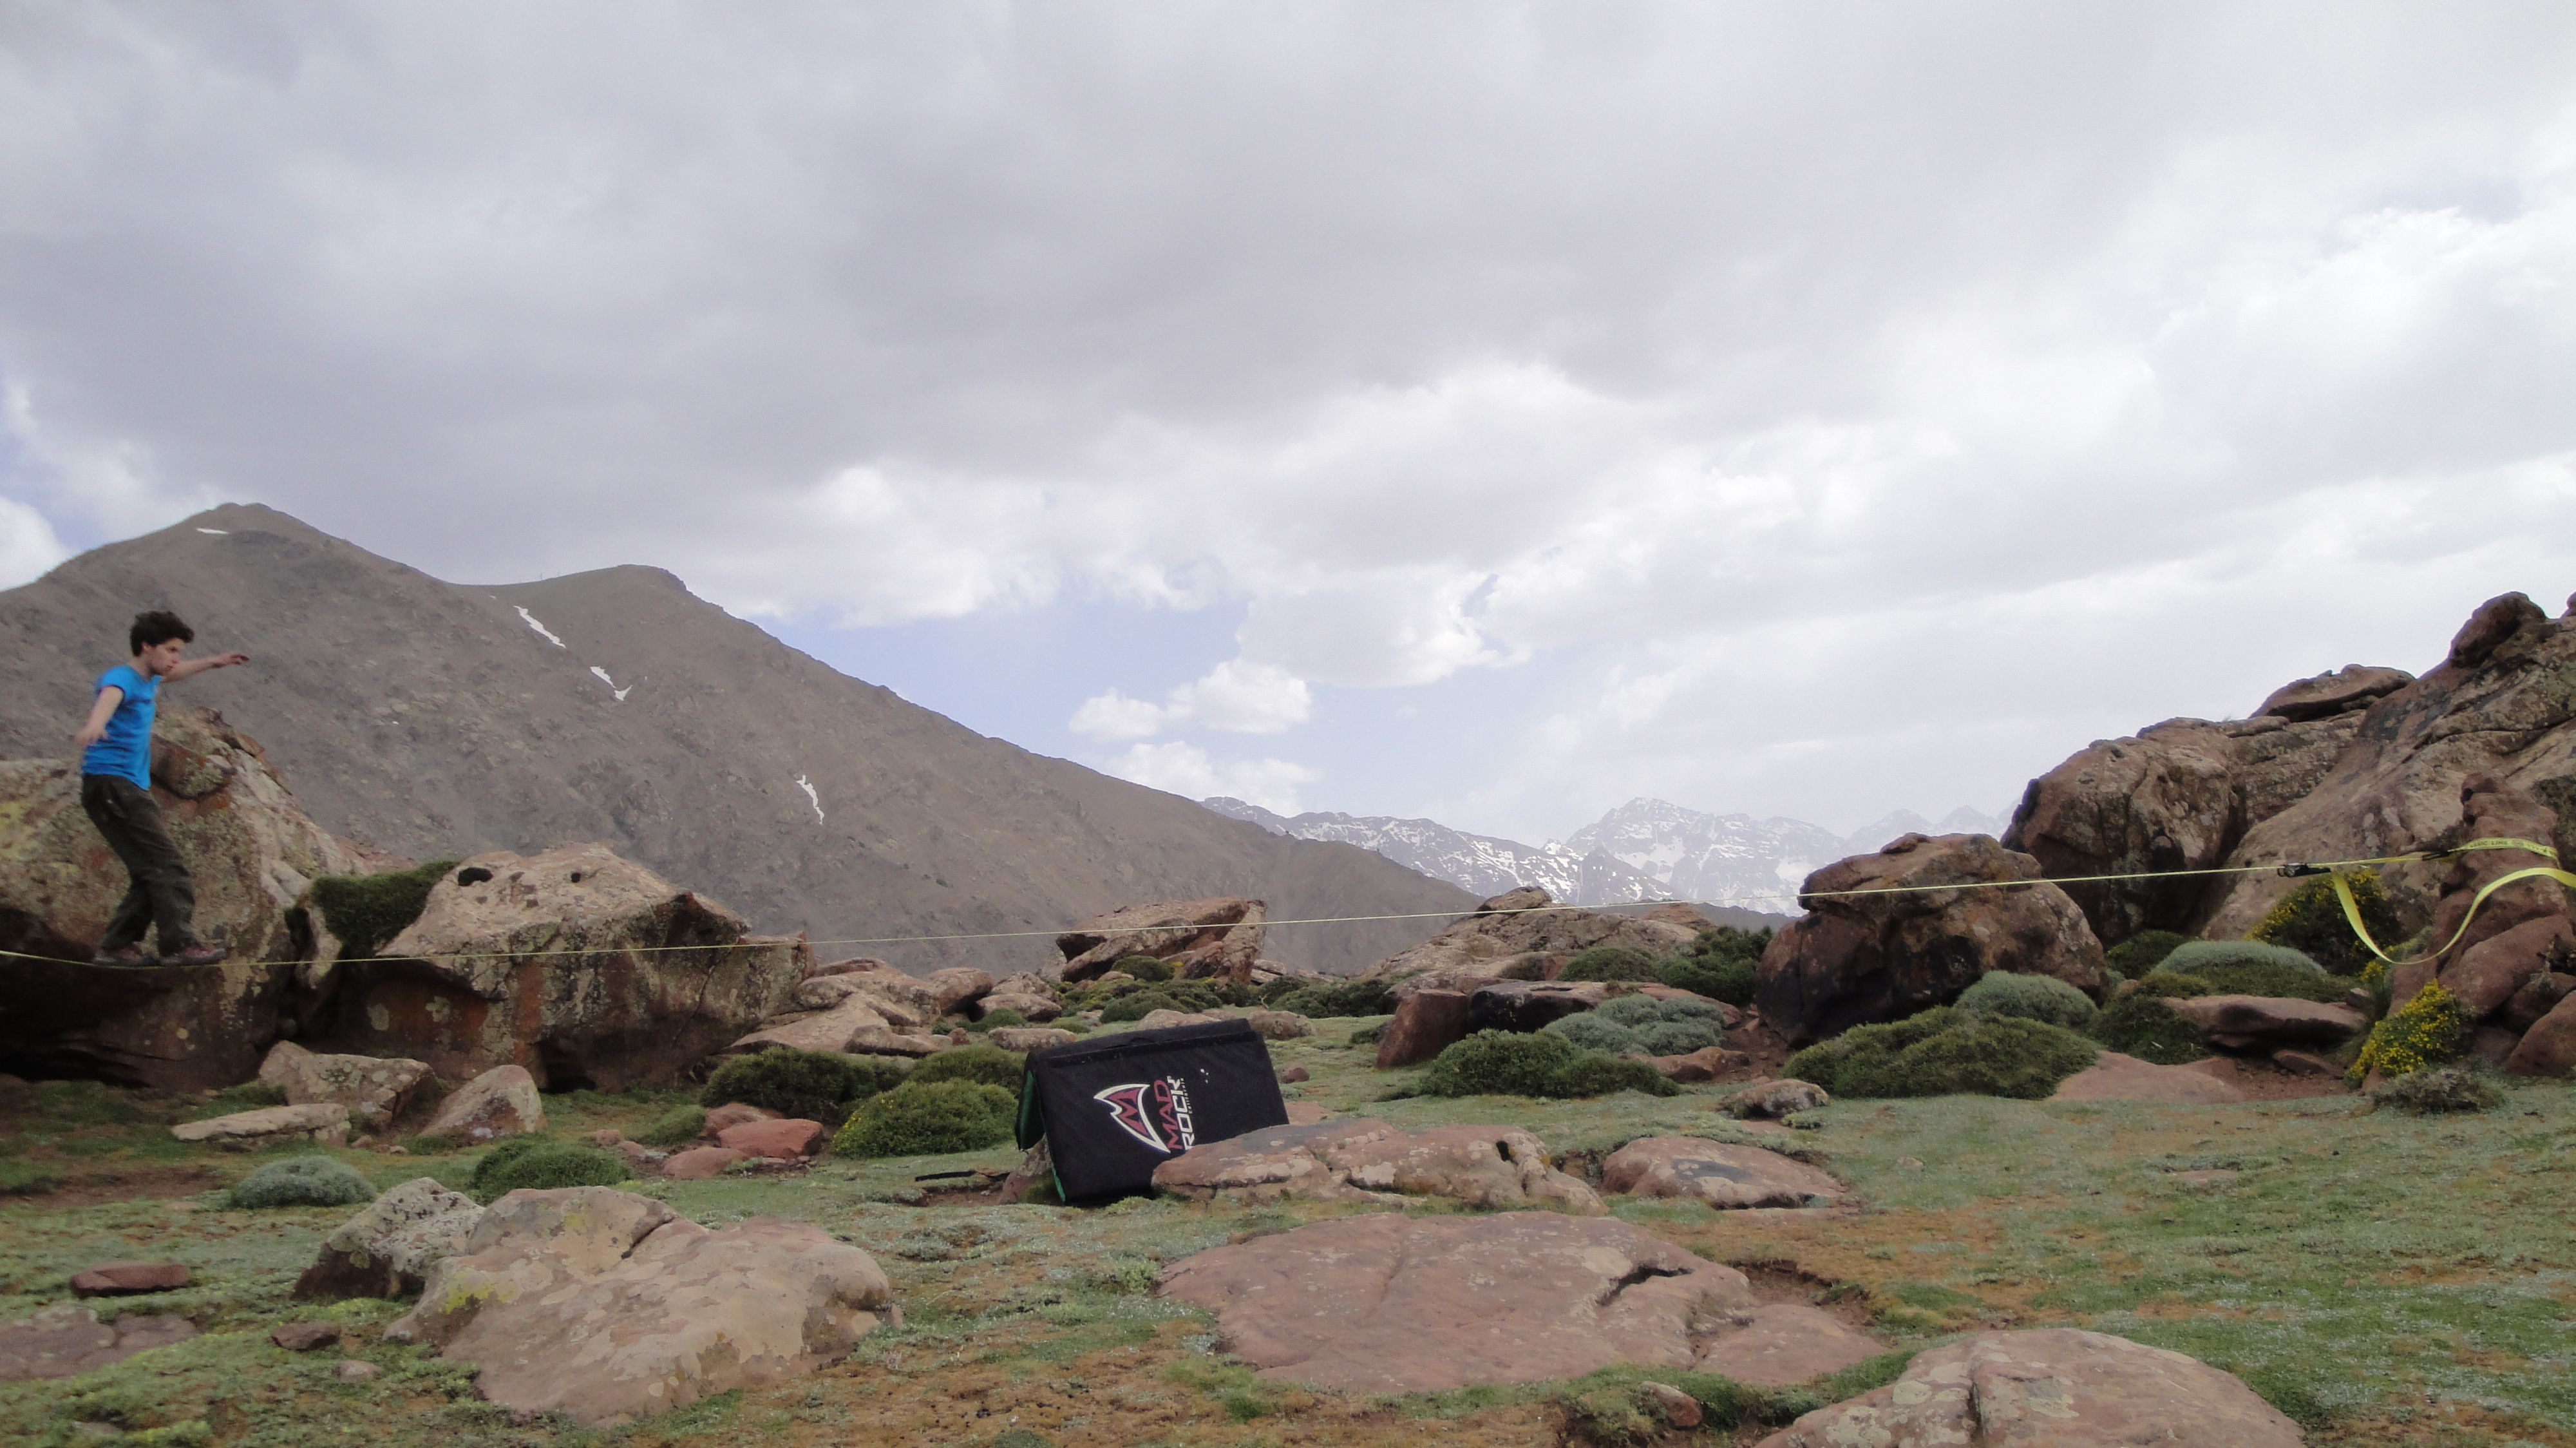 Bouldering in morocco in the village oukaimeden. High Atlas mountains. check www.imiksimik.nl for all the info you need